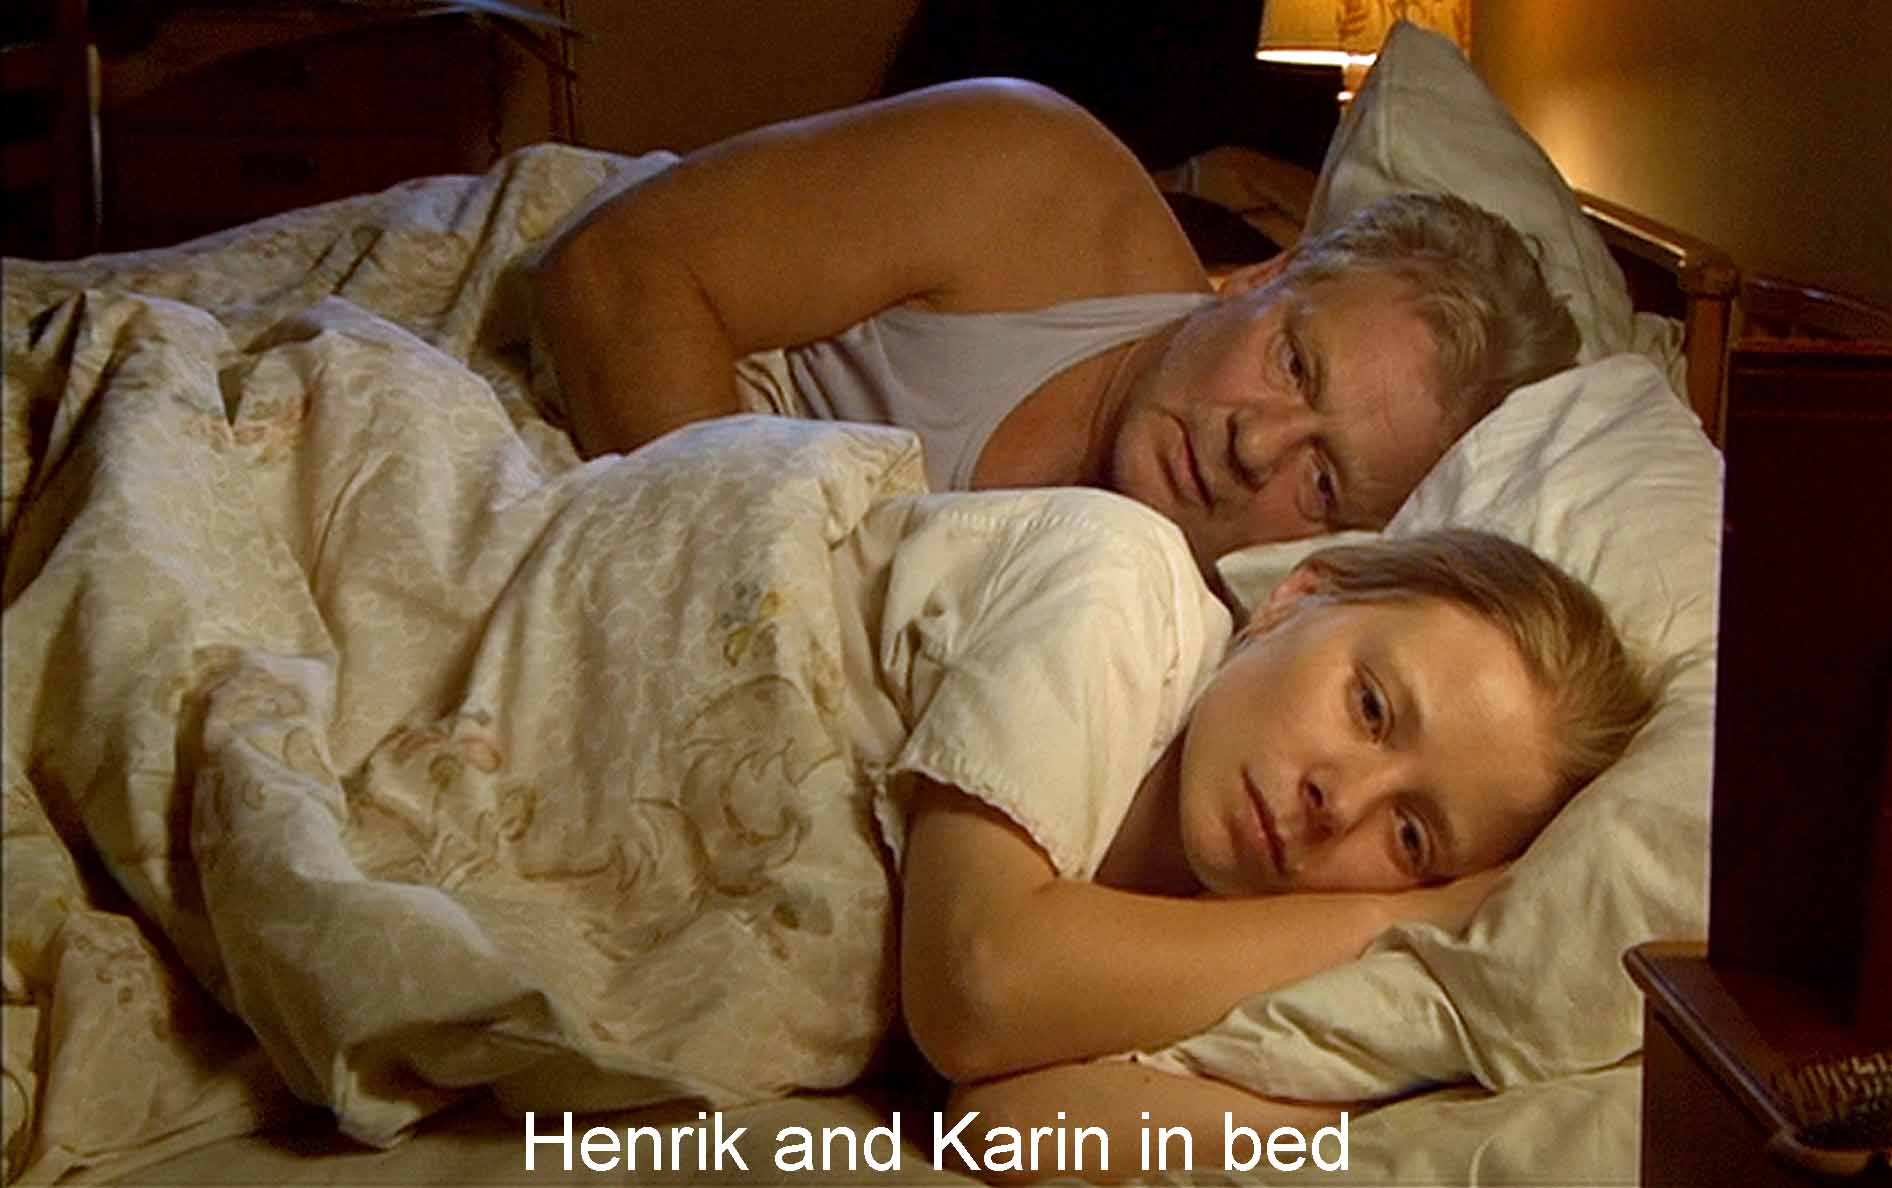 Henrik and Karin in bed